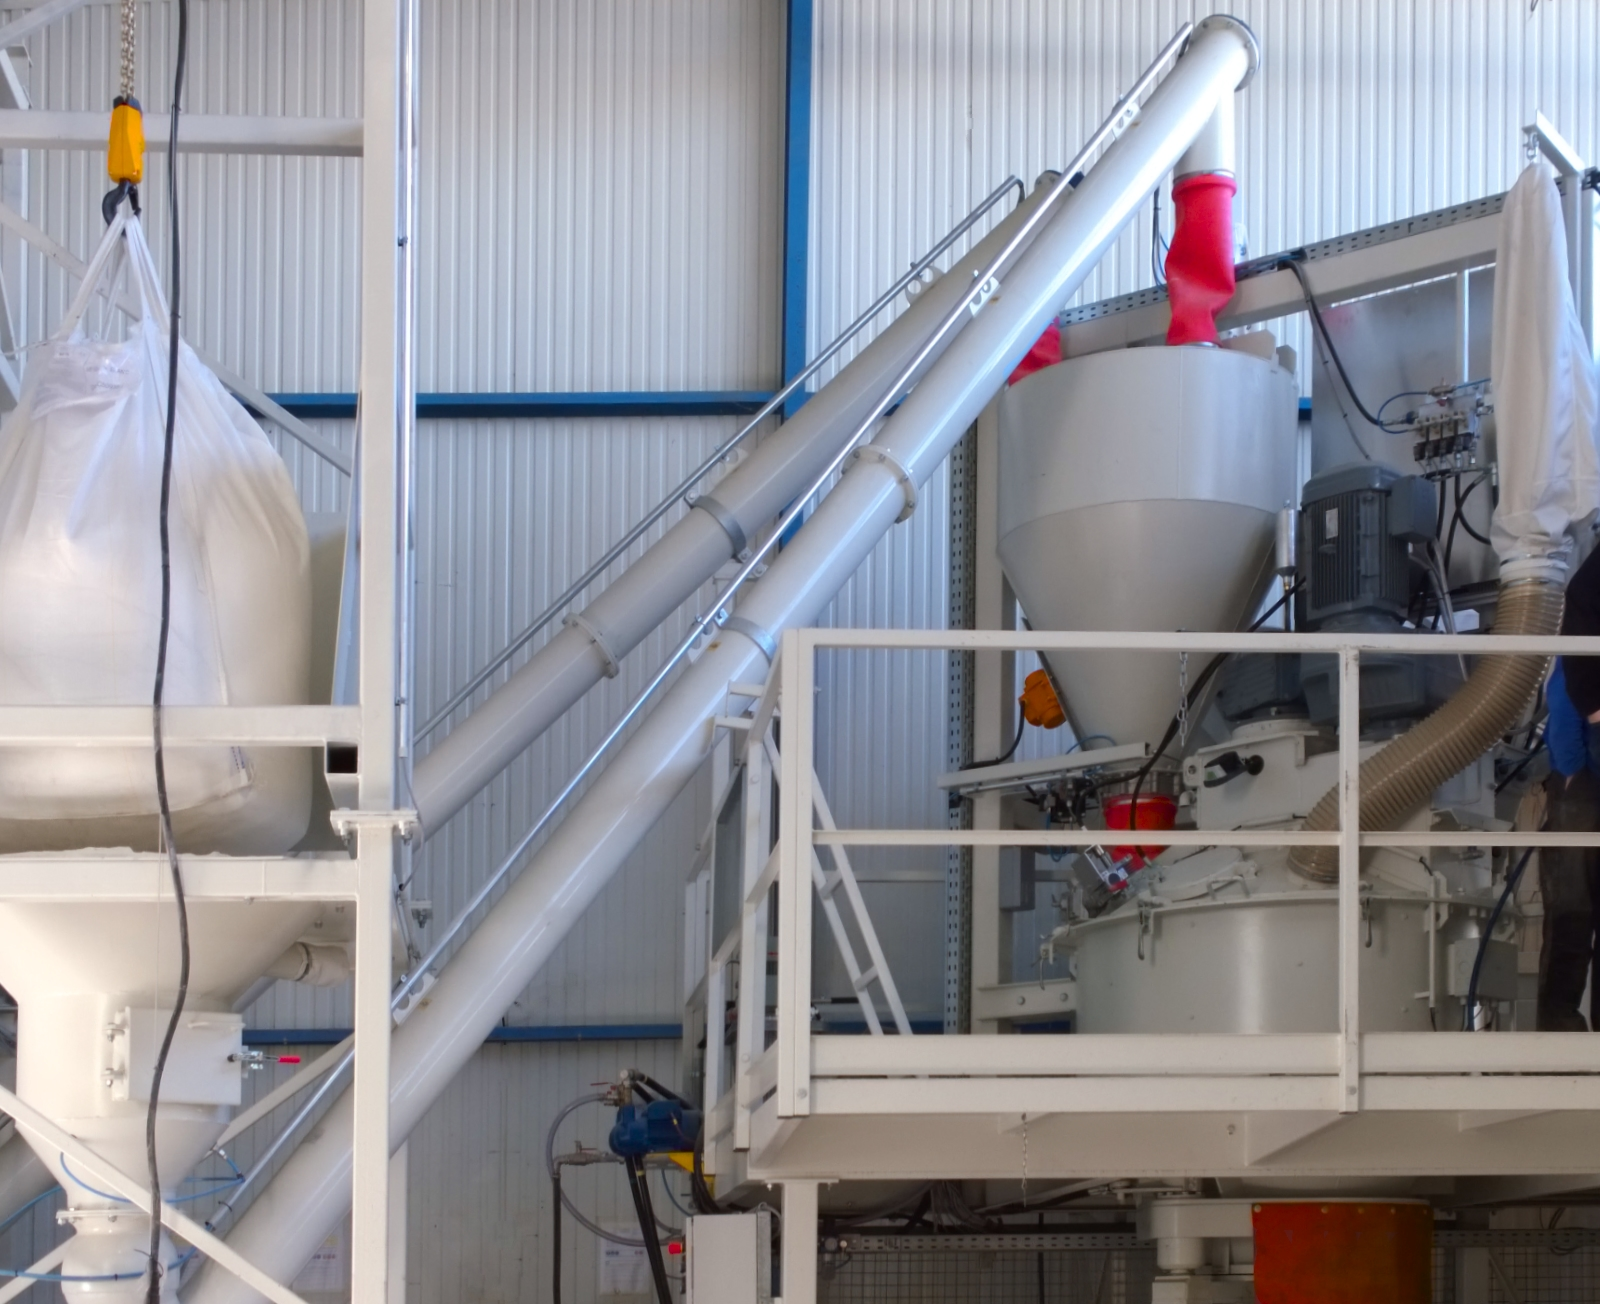 White concrete mixer with cement scales above on a steel platform, with cement screws and a big bag station.